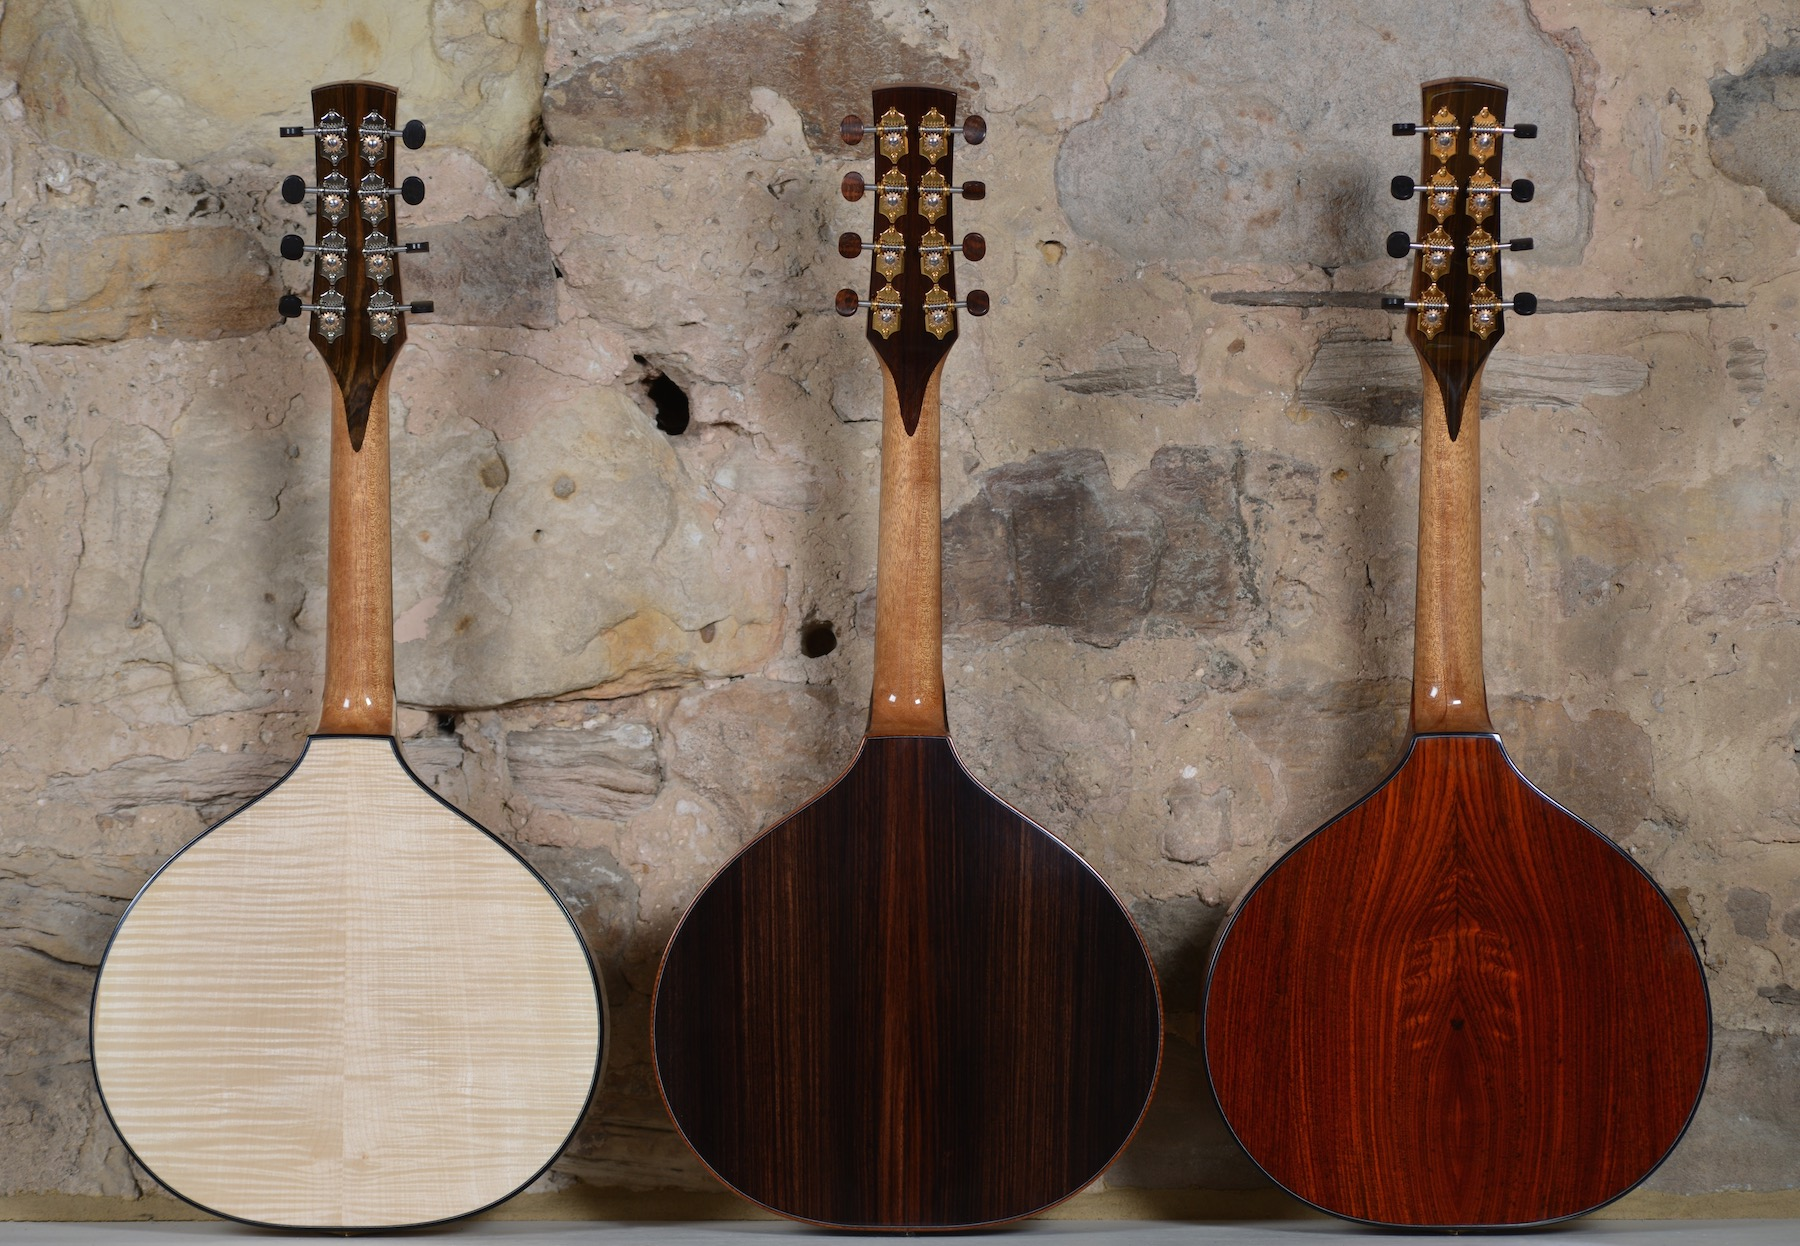 L-Scottish Sycamore C-Indian Rosewood R-Cocobolo